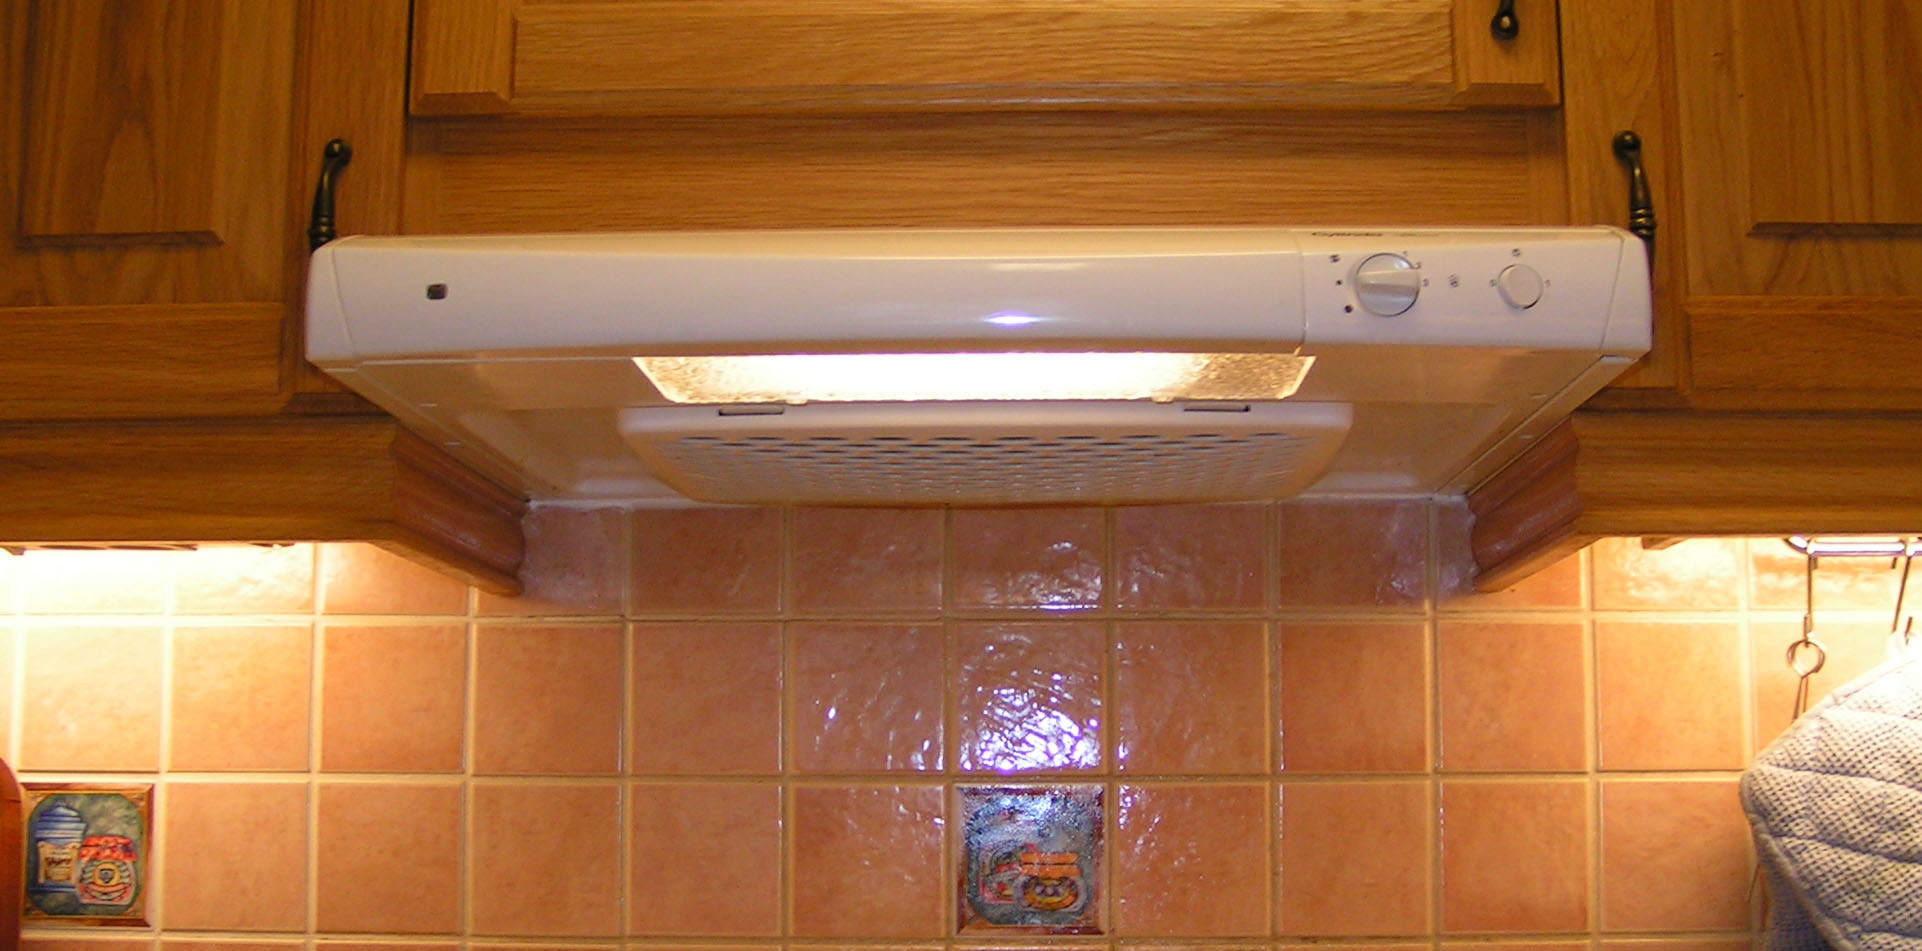 KITCHEN STOVE FANS KITCHEN DESIGN PHOTOS